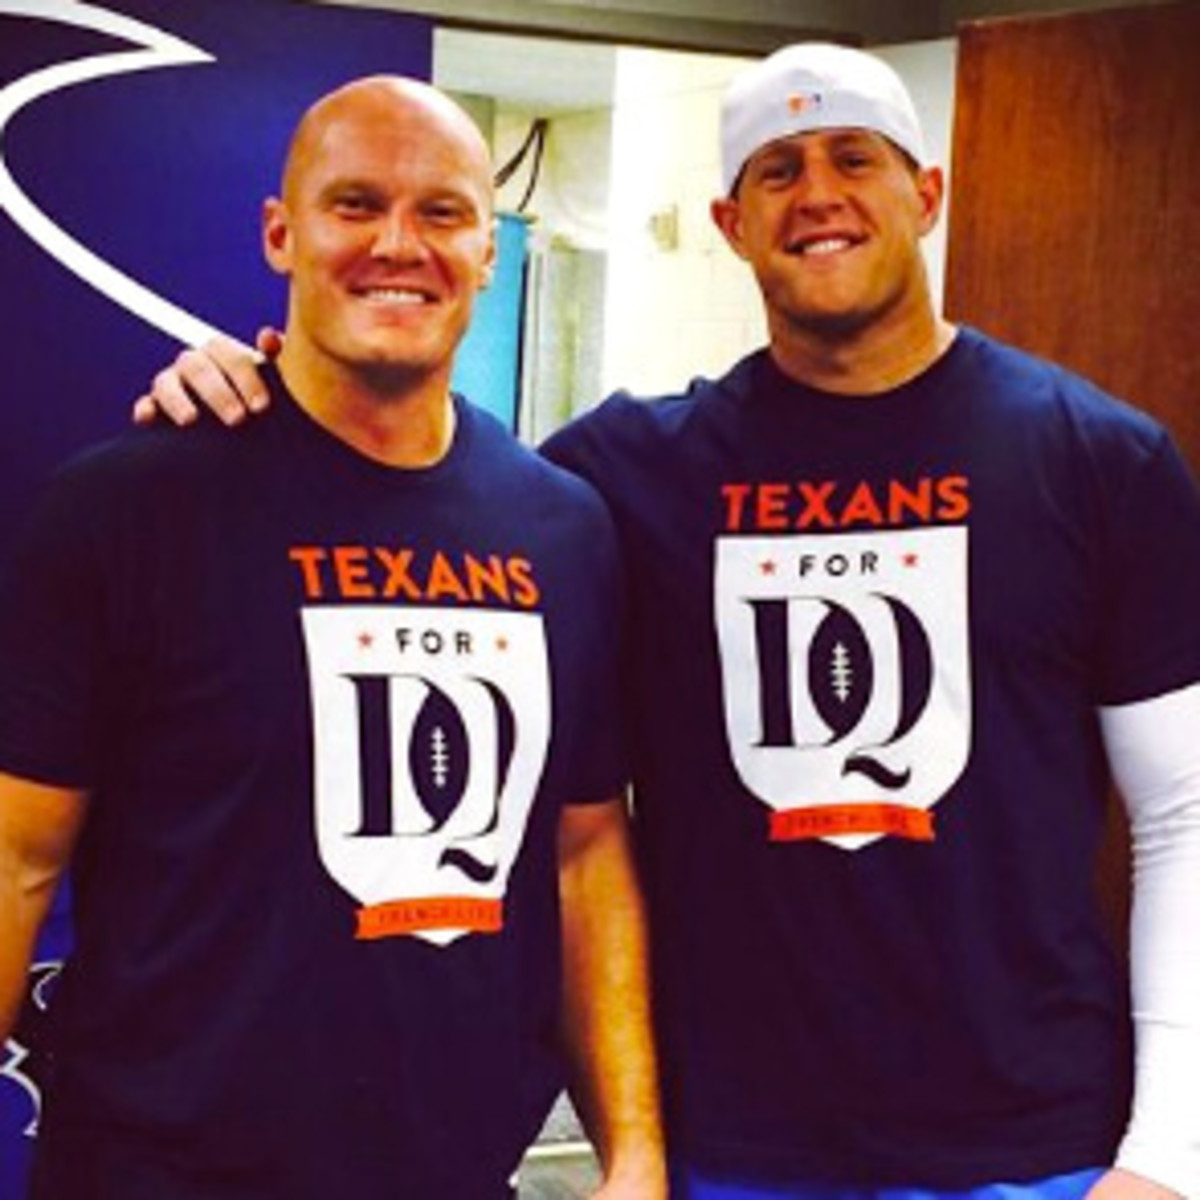 Houston, Running Game Clothing, September 2016, JJ Watt and Chris Myers in DQ Strong shirts